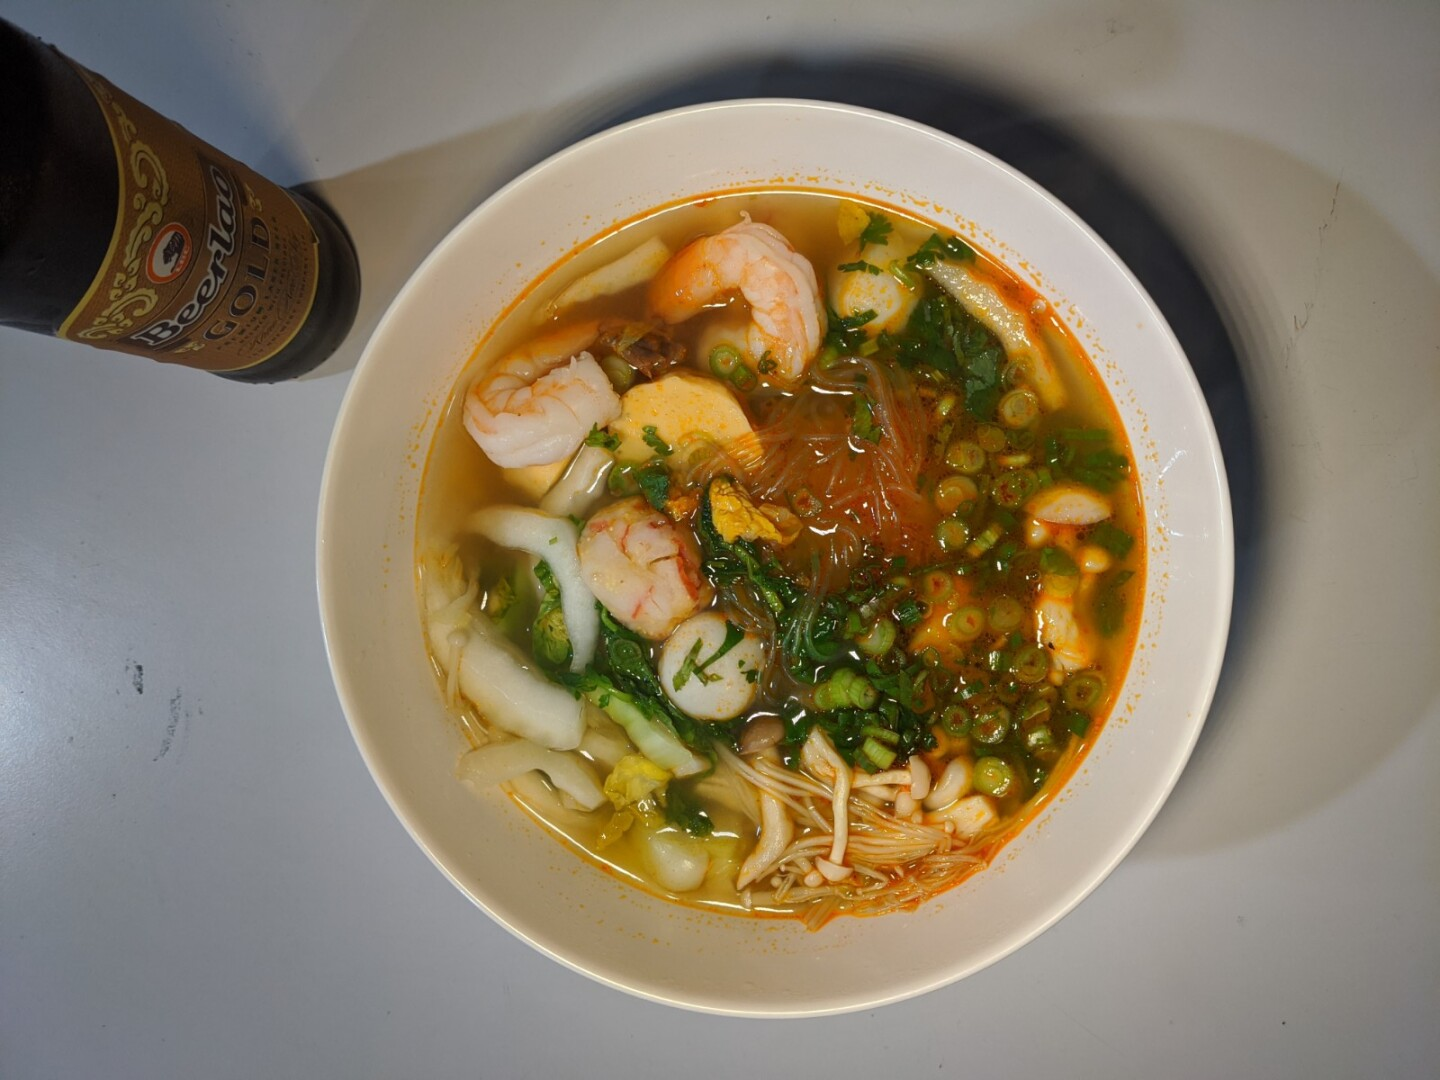 An overhead shot of a bowl of sukiyaki, a mung bean noodle soup filled with various herbs, mushrooms, shrimp and noodles.